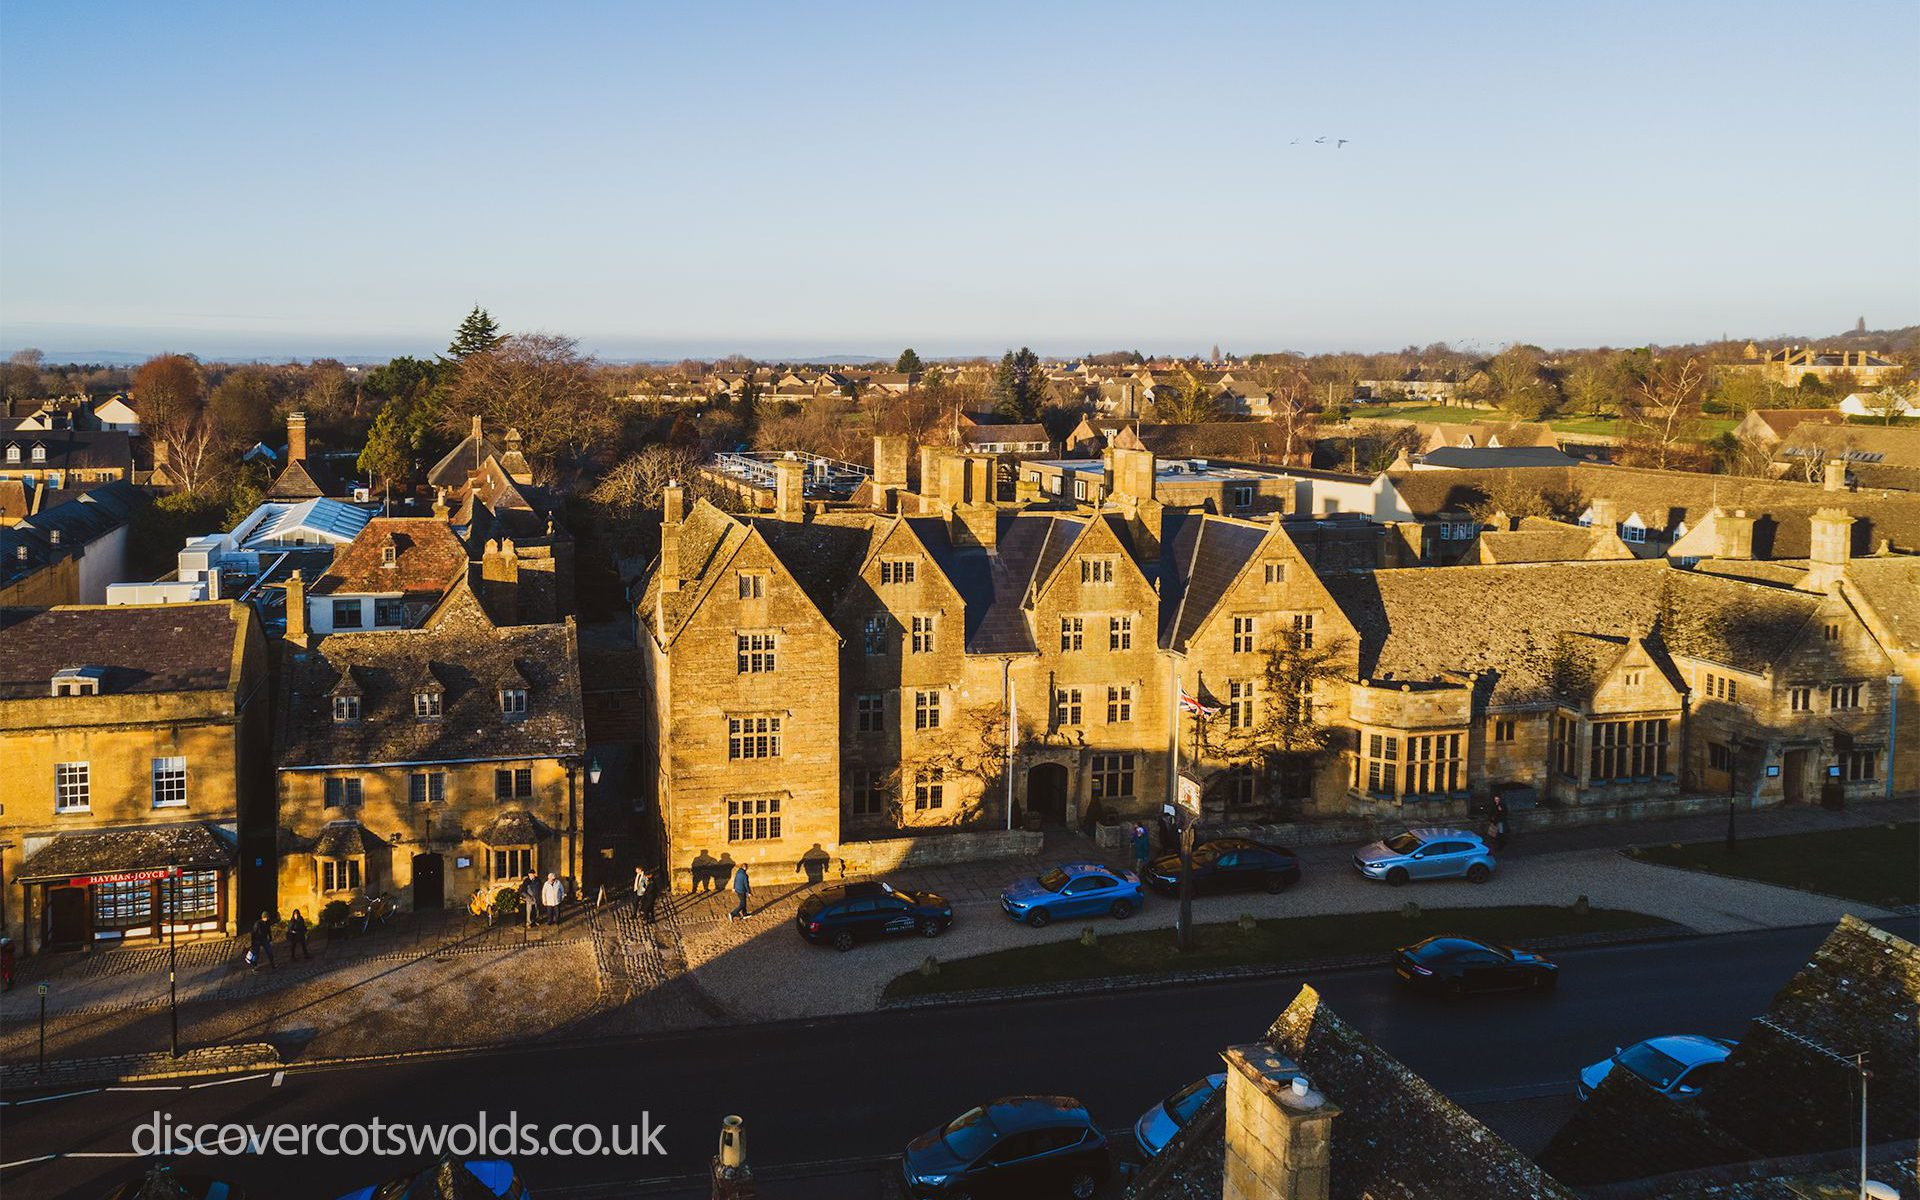 Lygon Arms Hotel in Broadway, Cotswolds